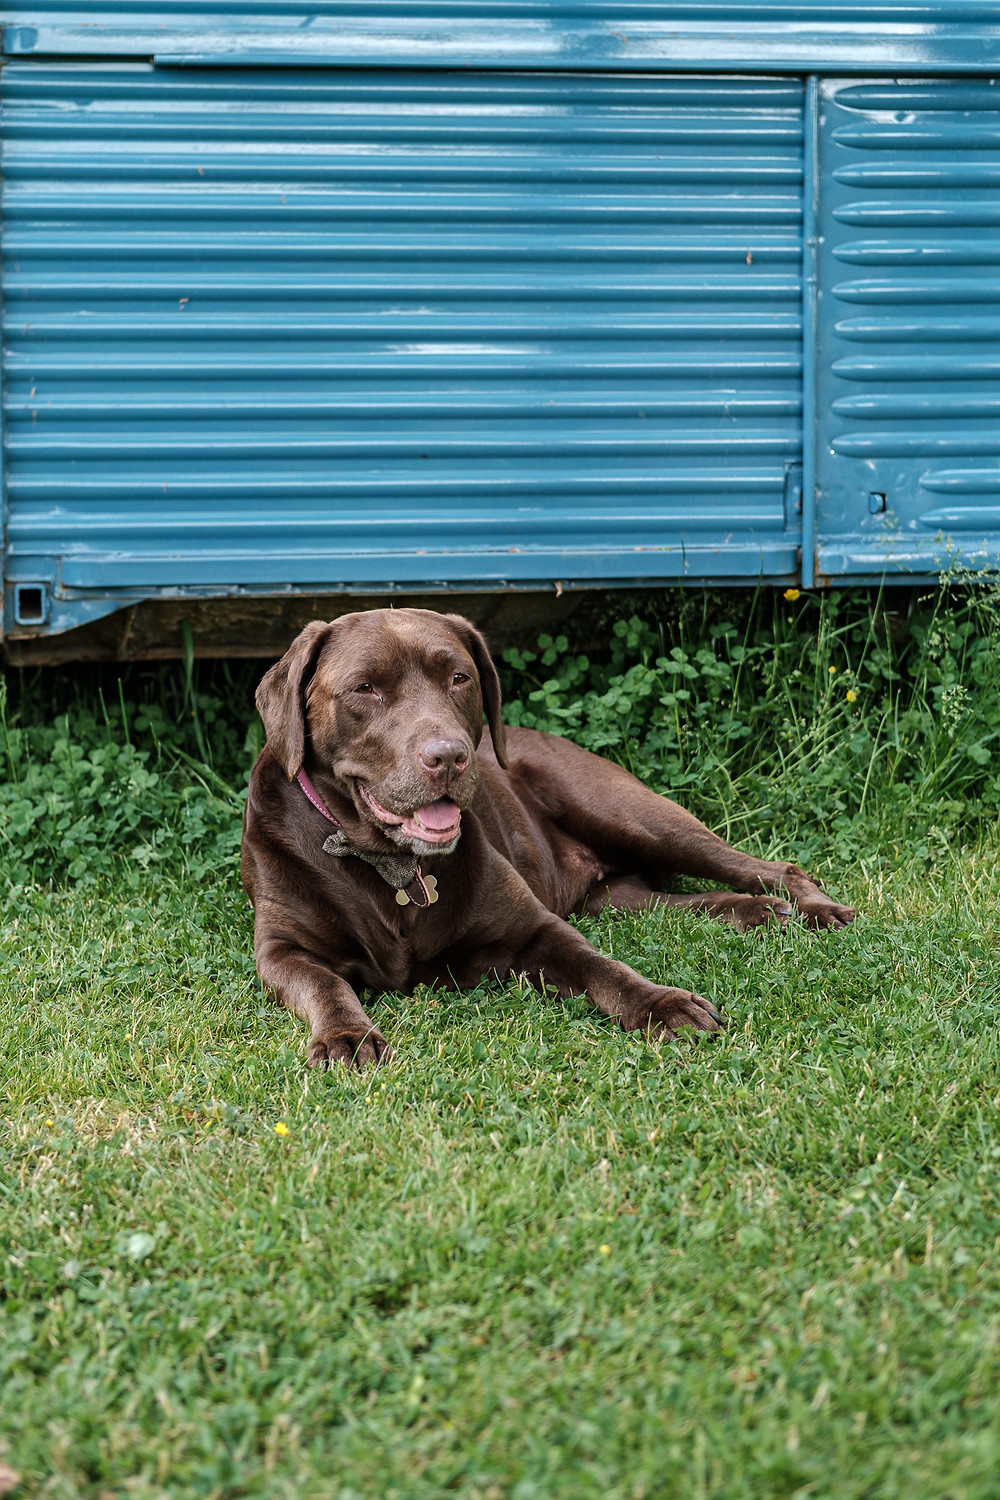 Chocolate Labrador Tilly relaxing on the grass